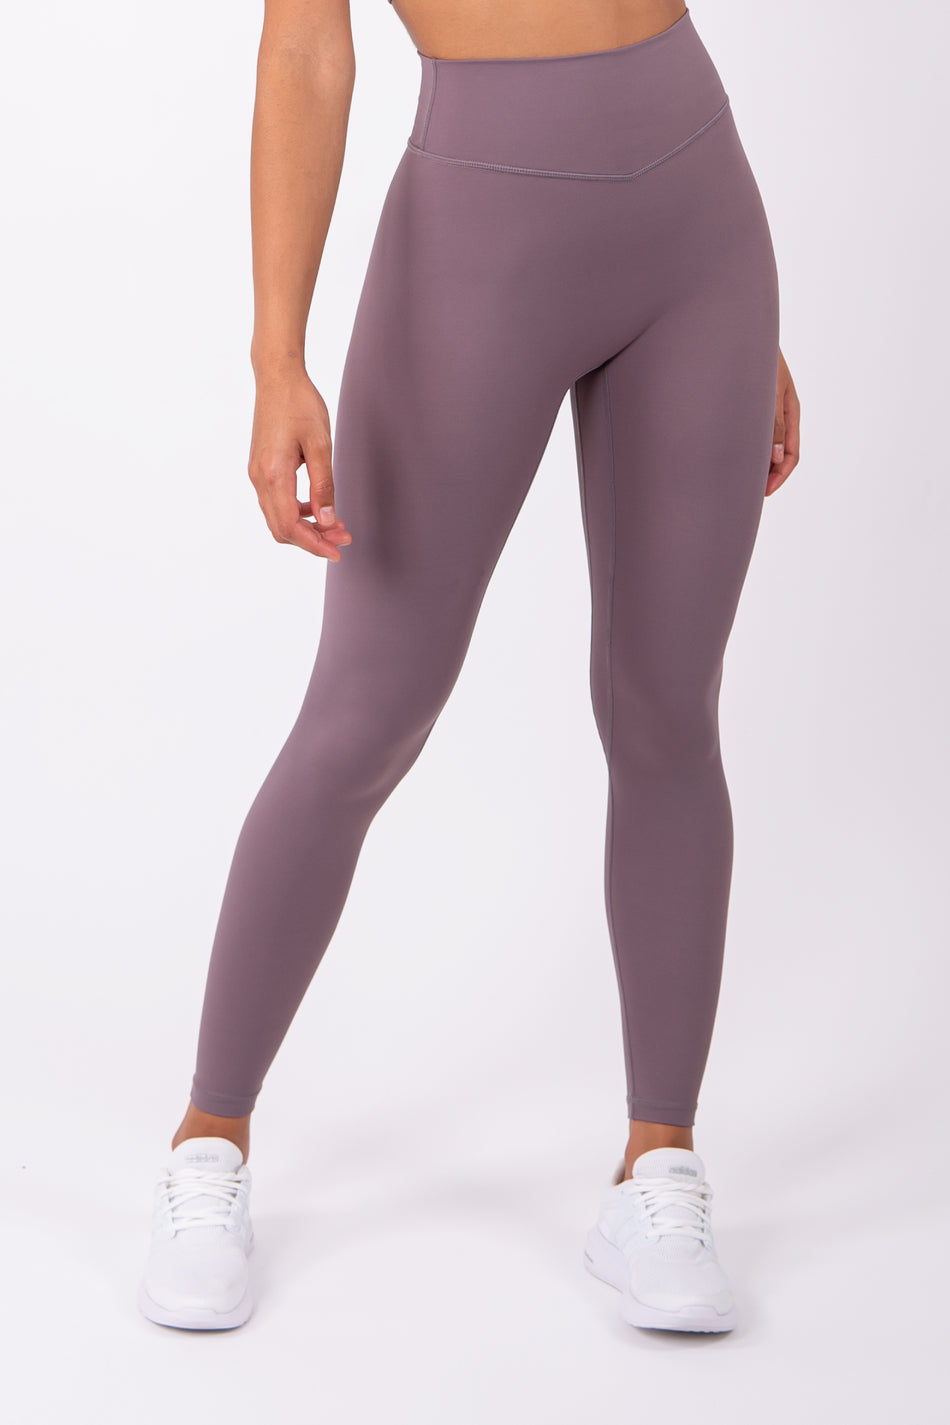 Infinity Leggings - Mauve